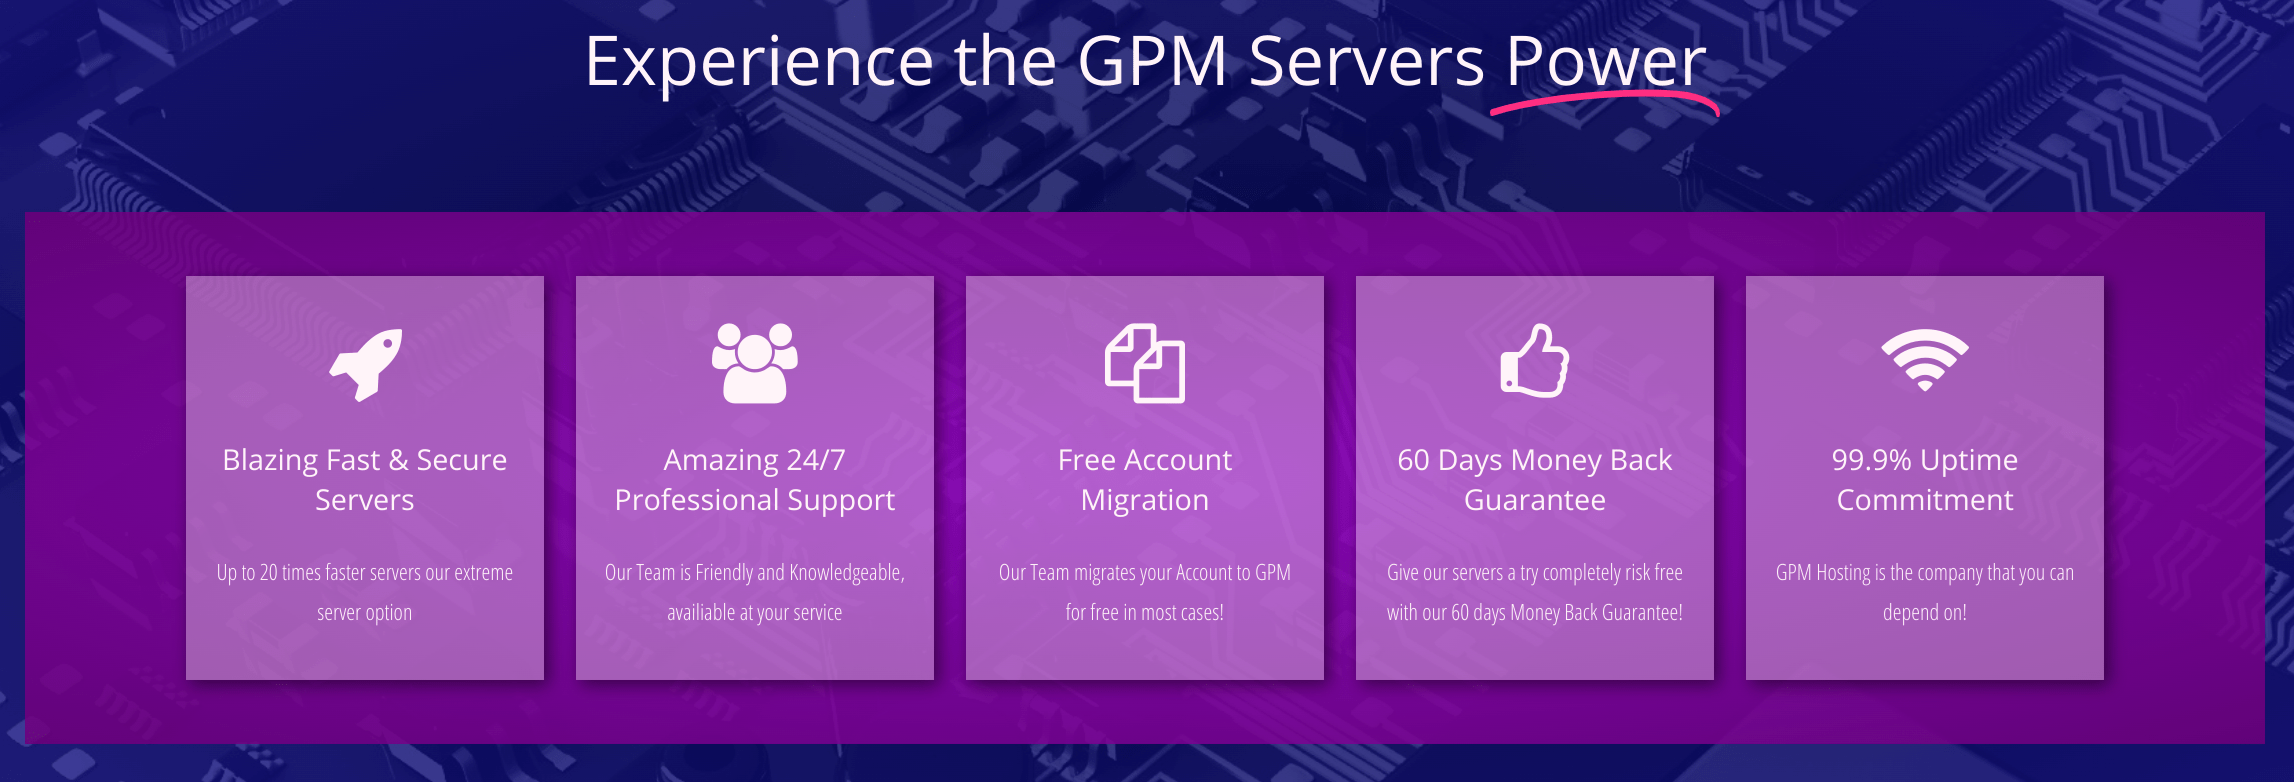 gpm features